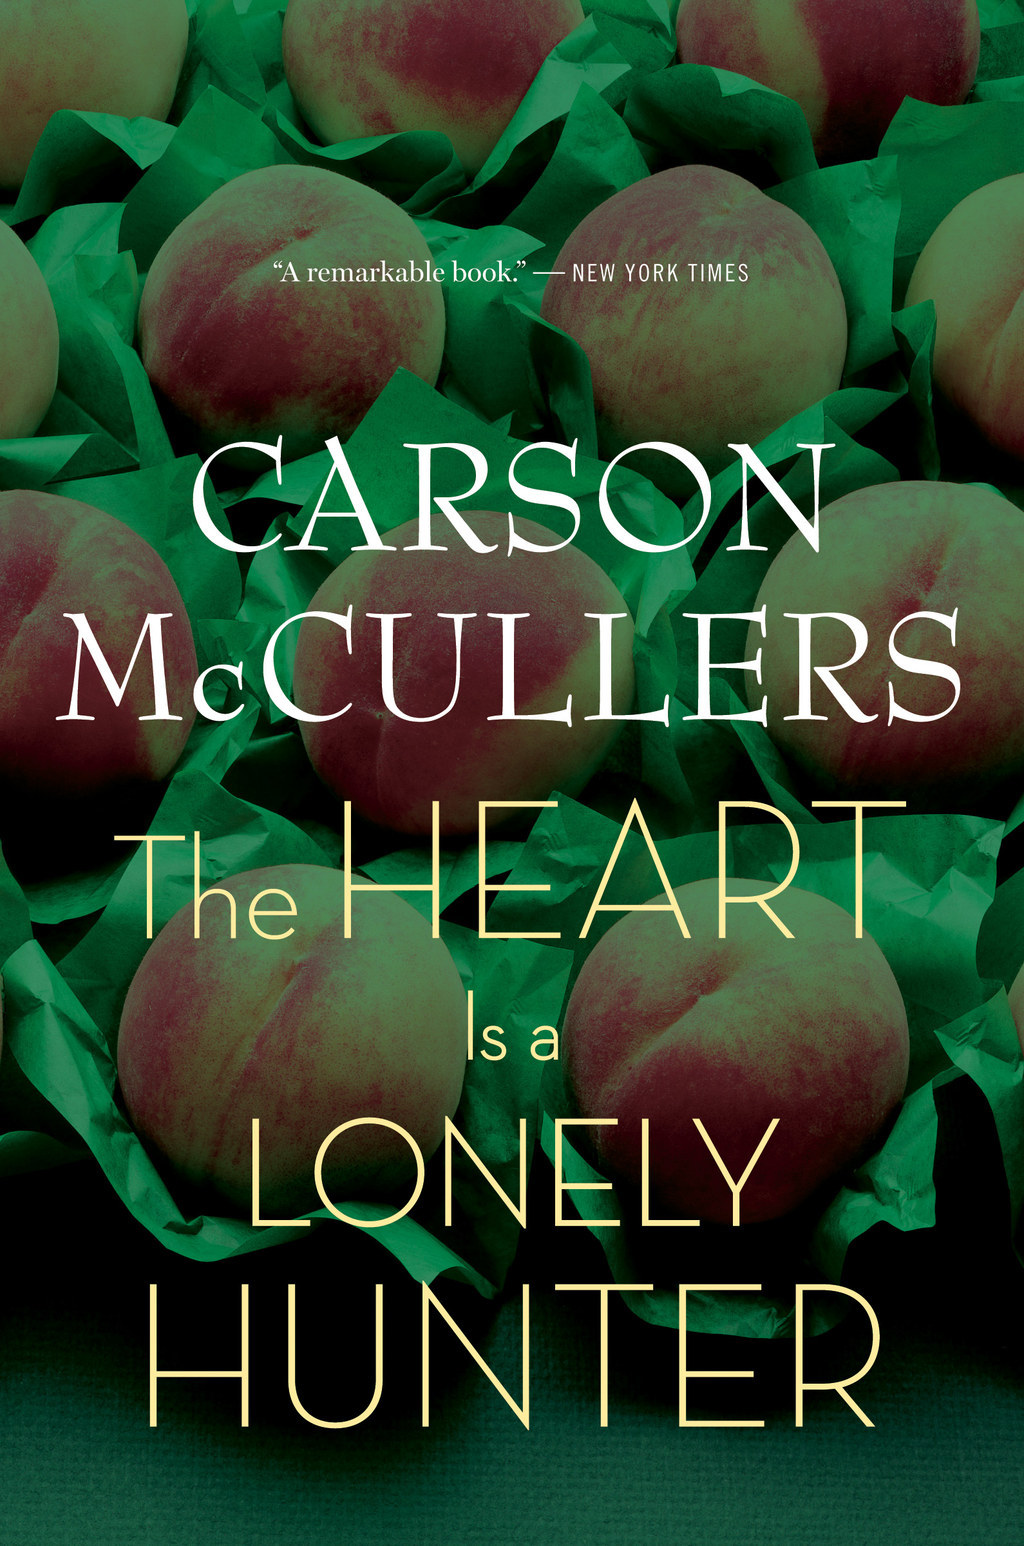 an analysis of the loneliness in the heart is a lonely hunter by carson mcculler All of carson mccullers's fiction, from the heart is a lonely hunter (1940) through the member of the wedding (1946), the ballad of the sad cafe (1951) and.